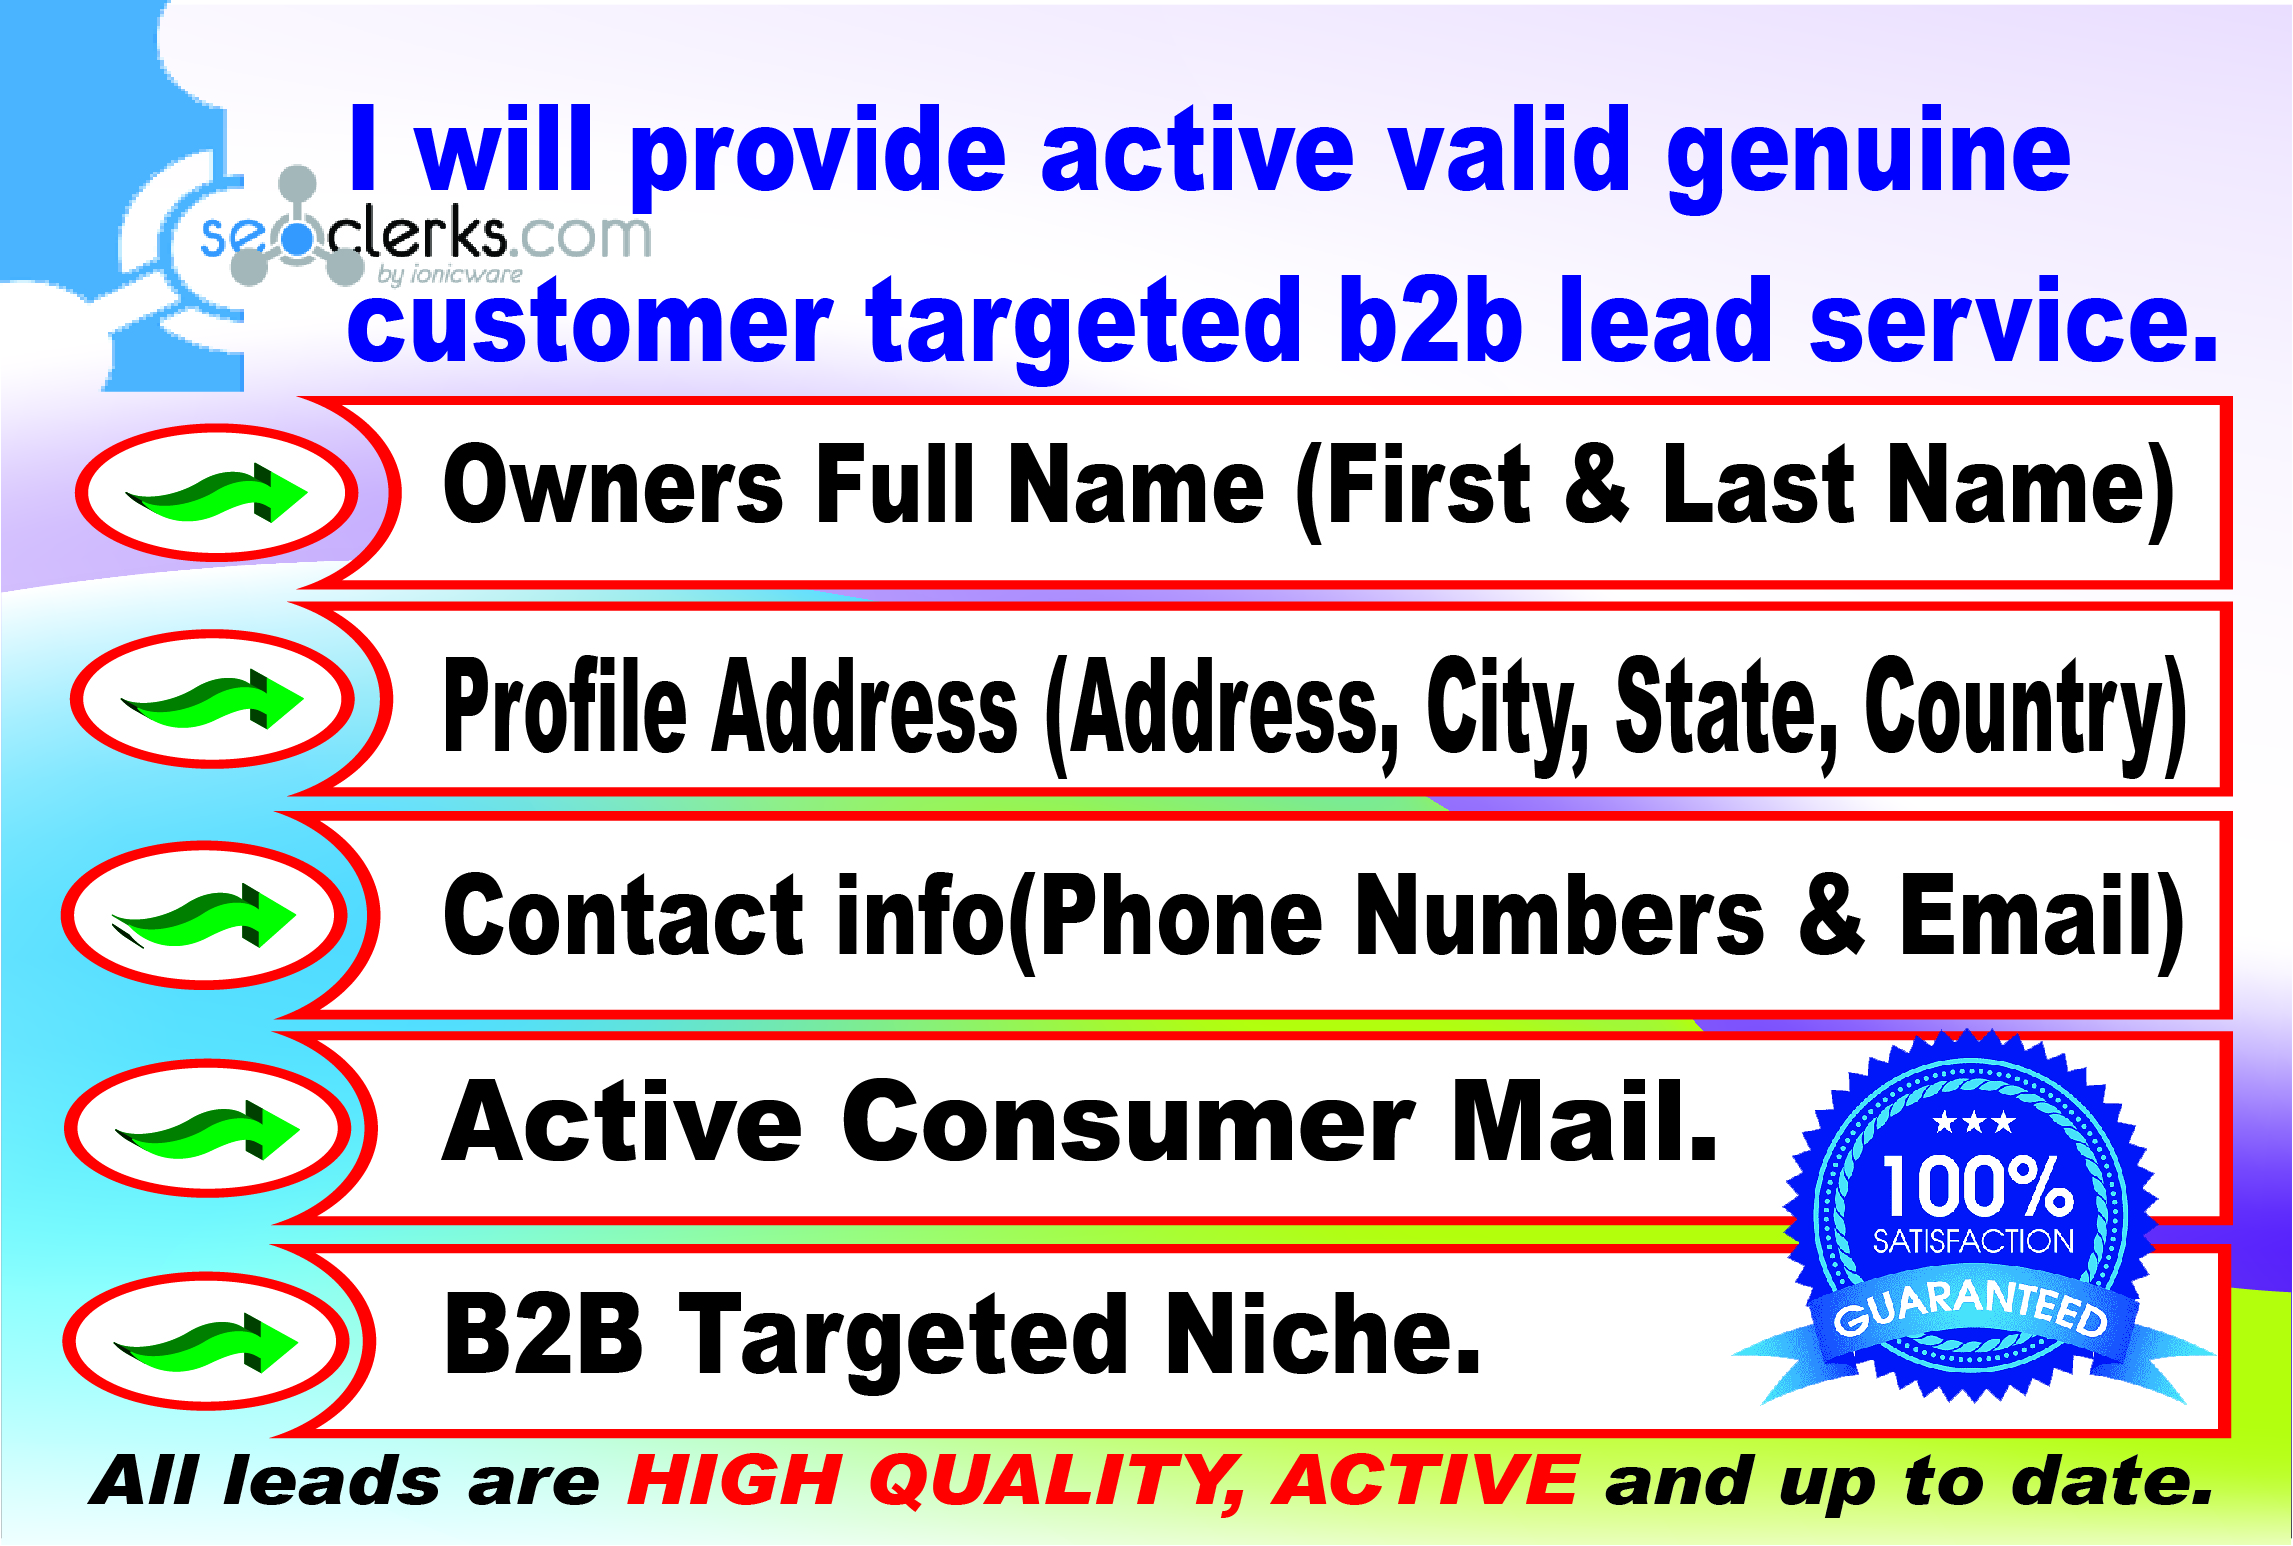 I will provide active insurance customer targeted b2b lead service